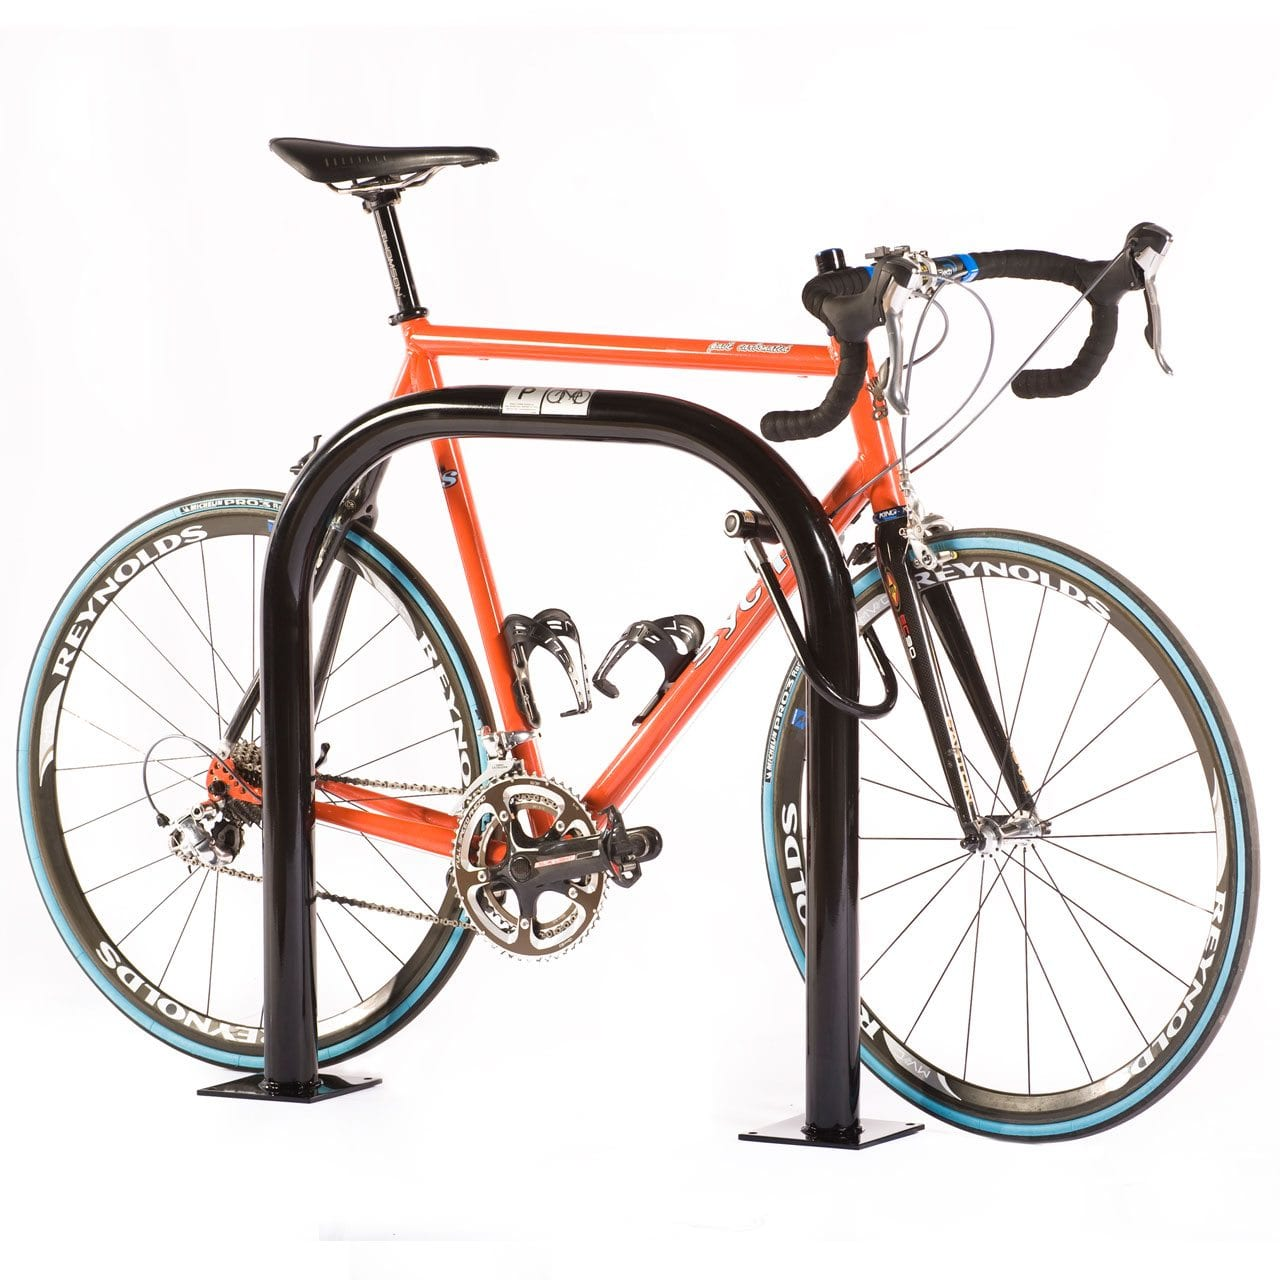 Outdoor bicycle racks commercial bike parking racks Outdoor bicycle